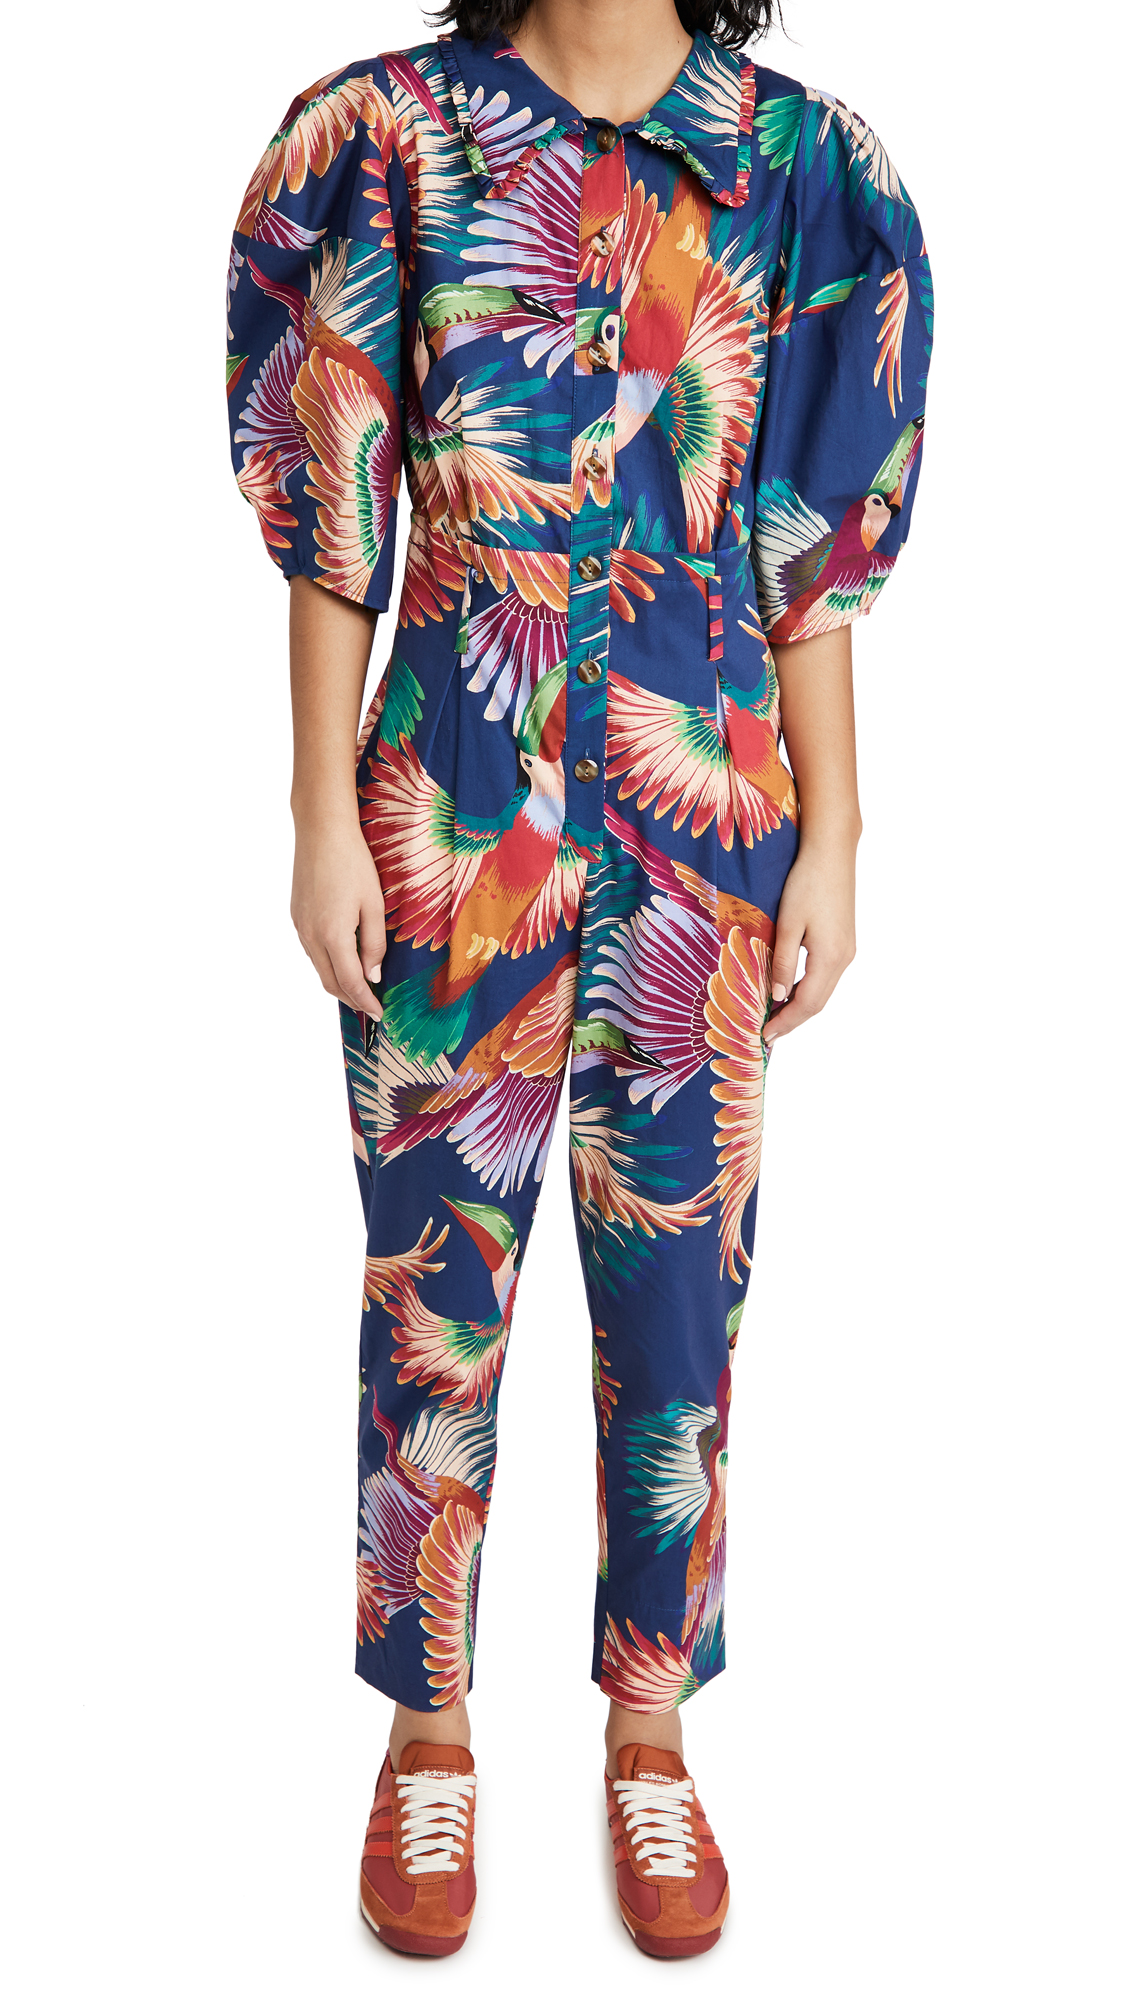 FARM Rio Navy Colorful Toucans Jumpsuit